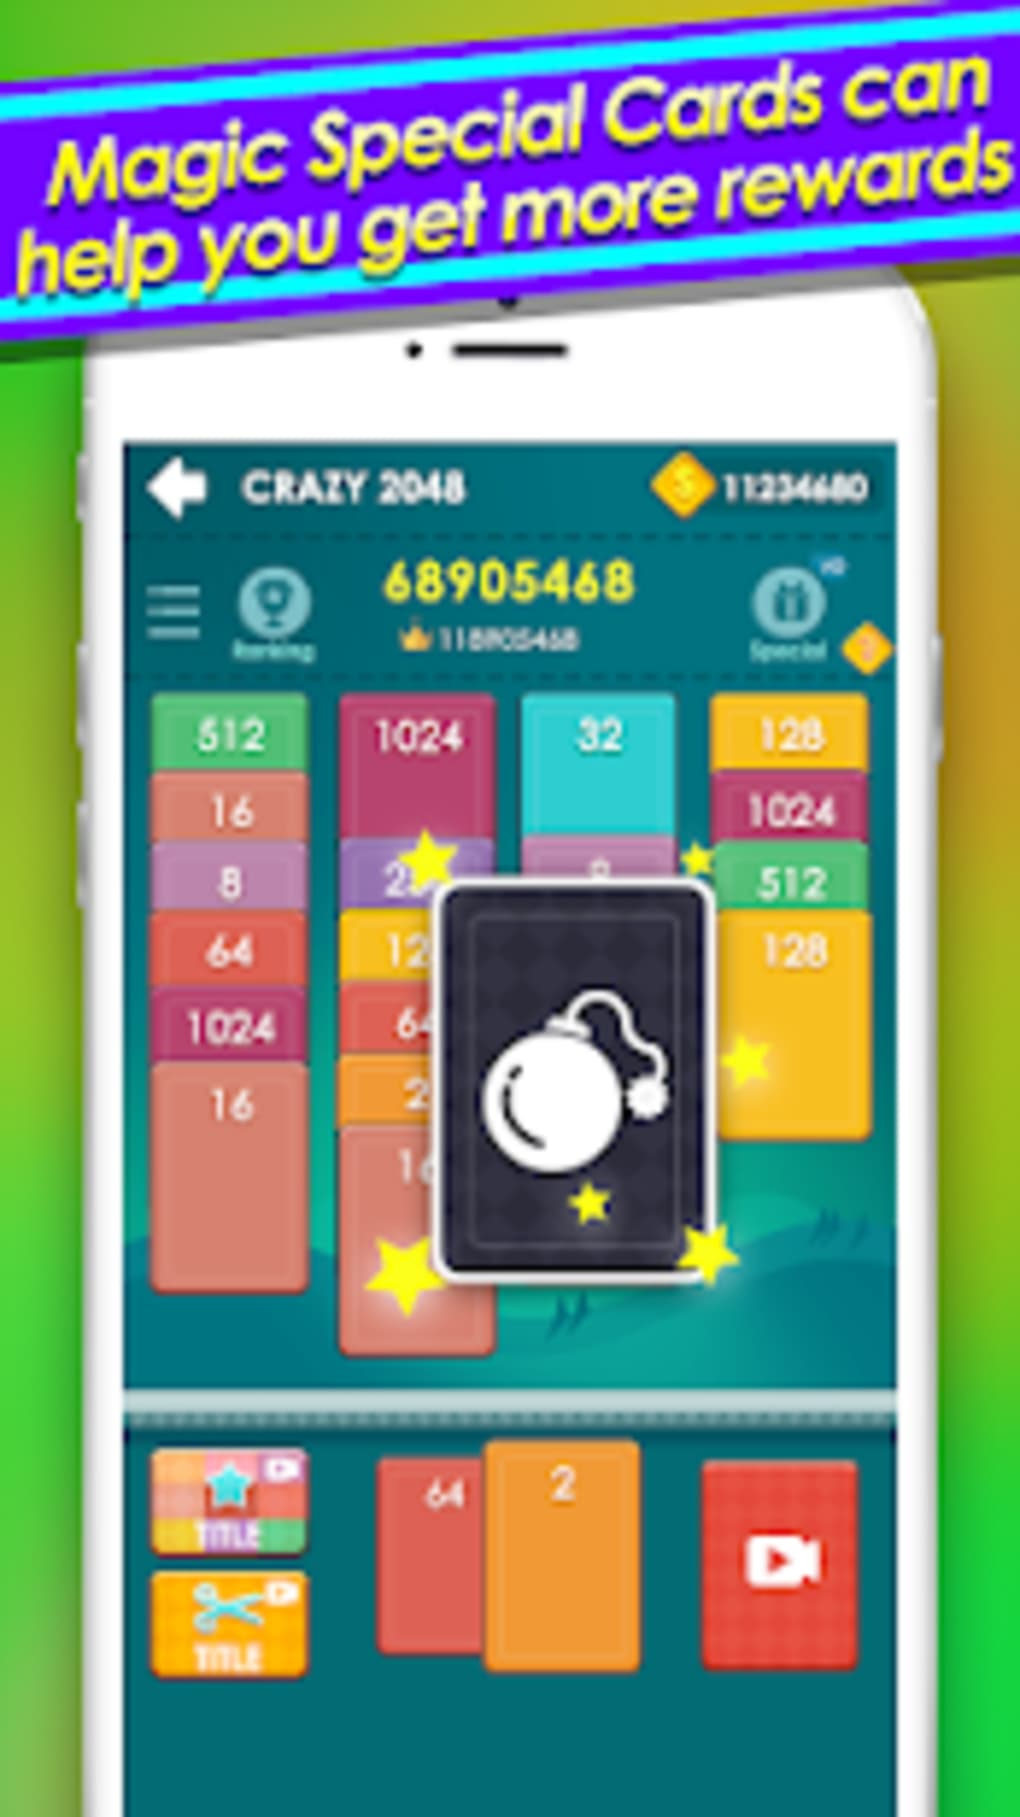 2048 solitaire - 2048 Cards game to win real money for Android